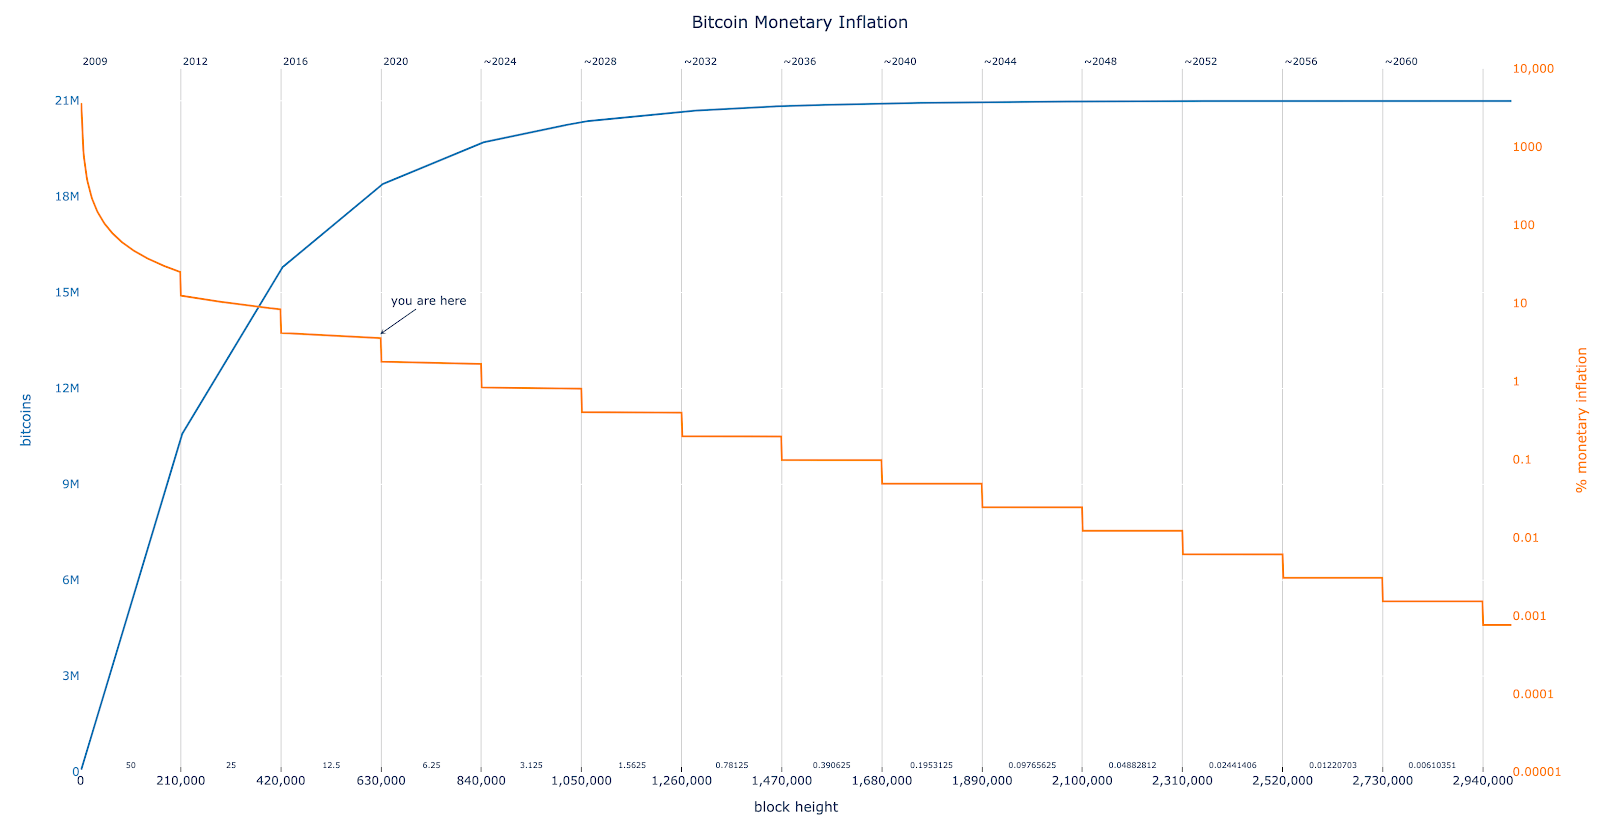 bitcoin circulating supply and issuance over time